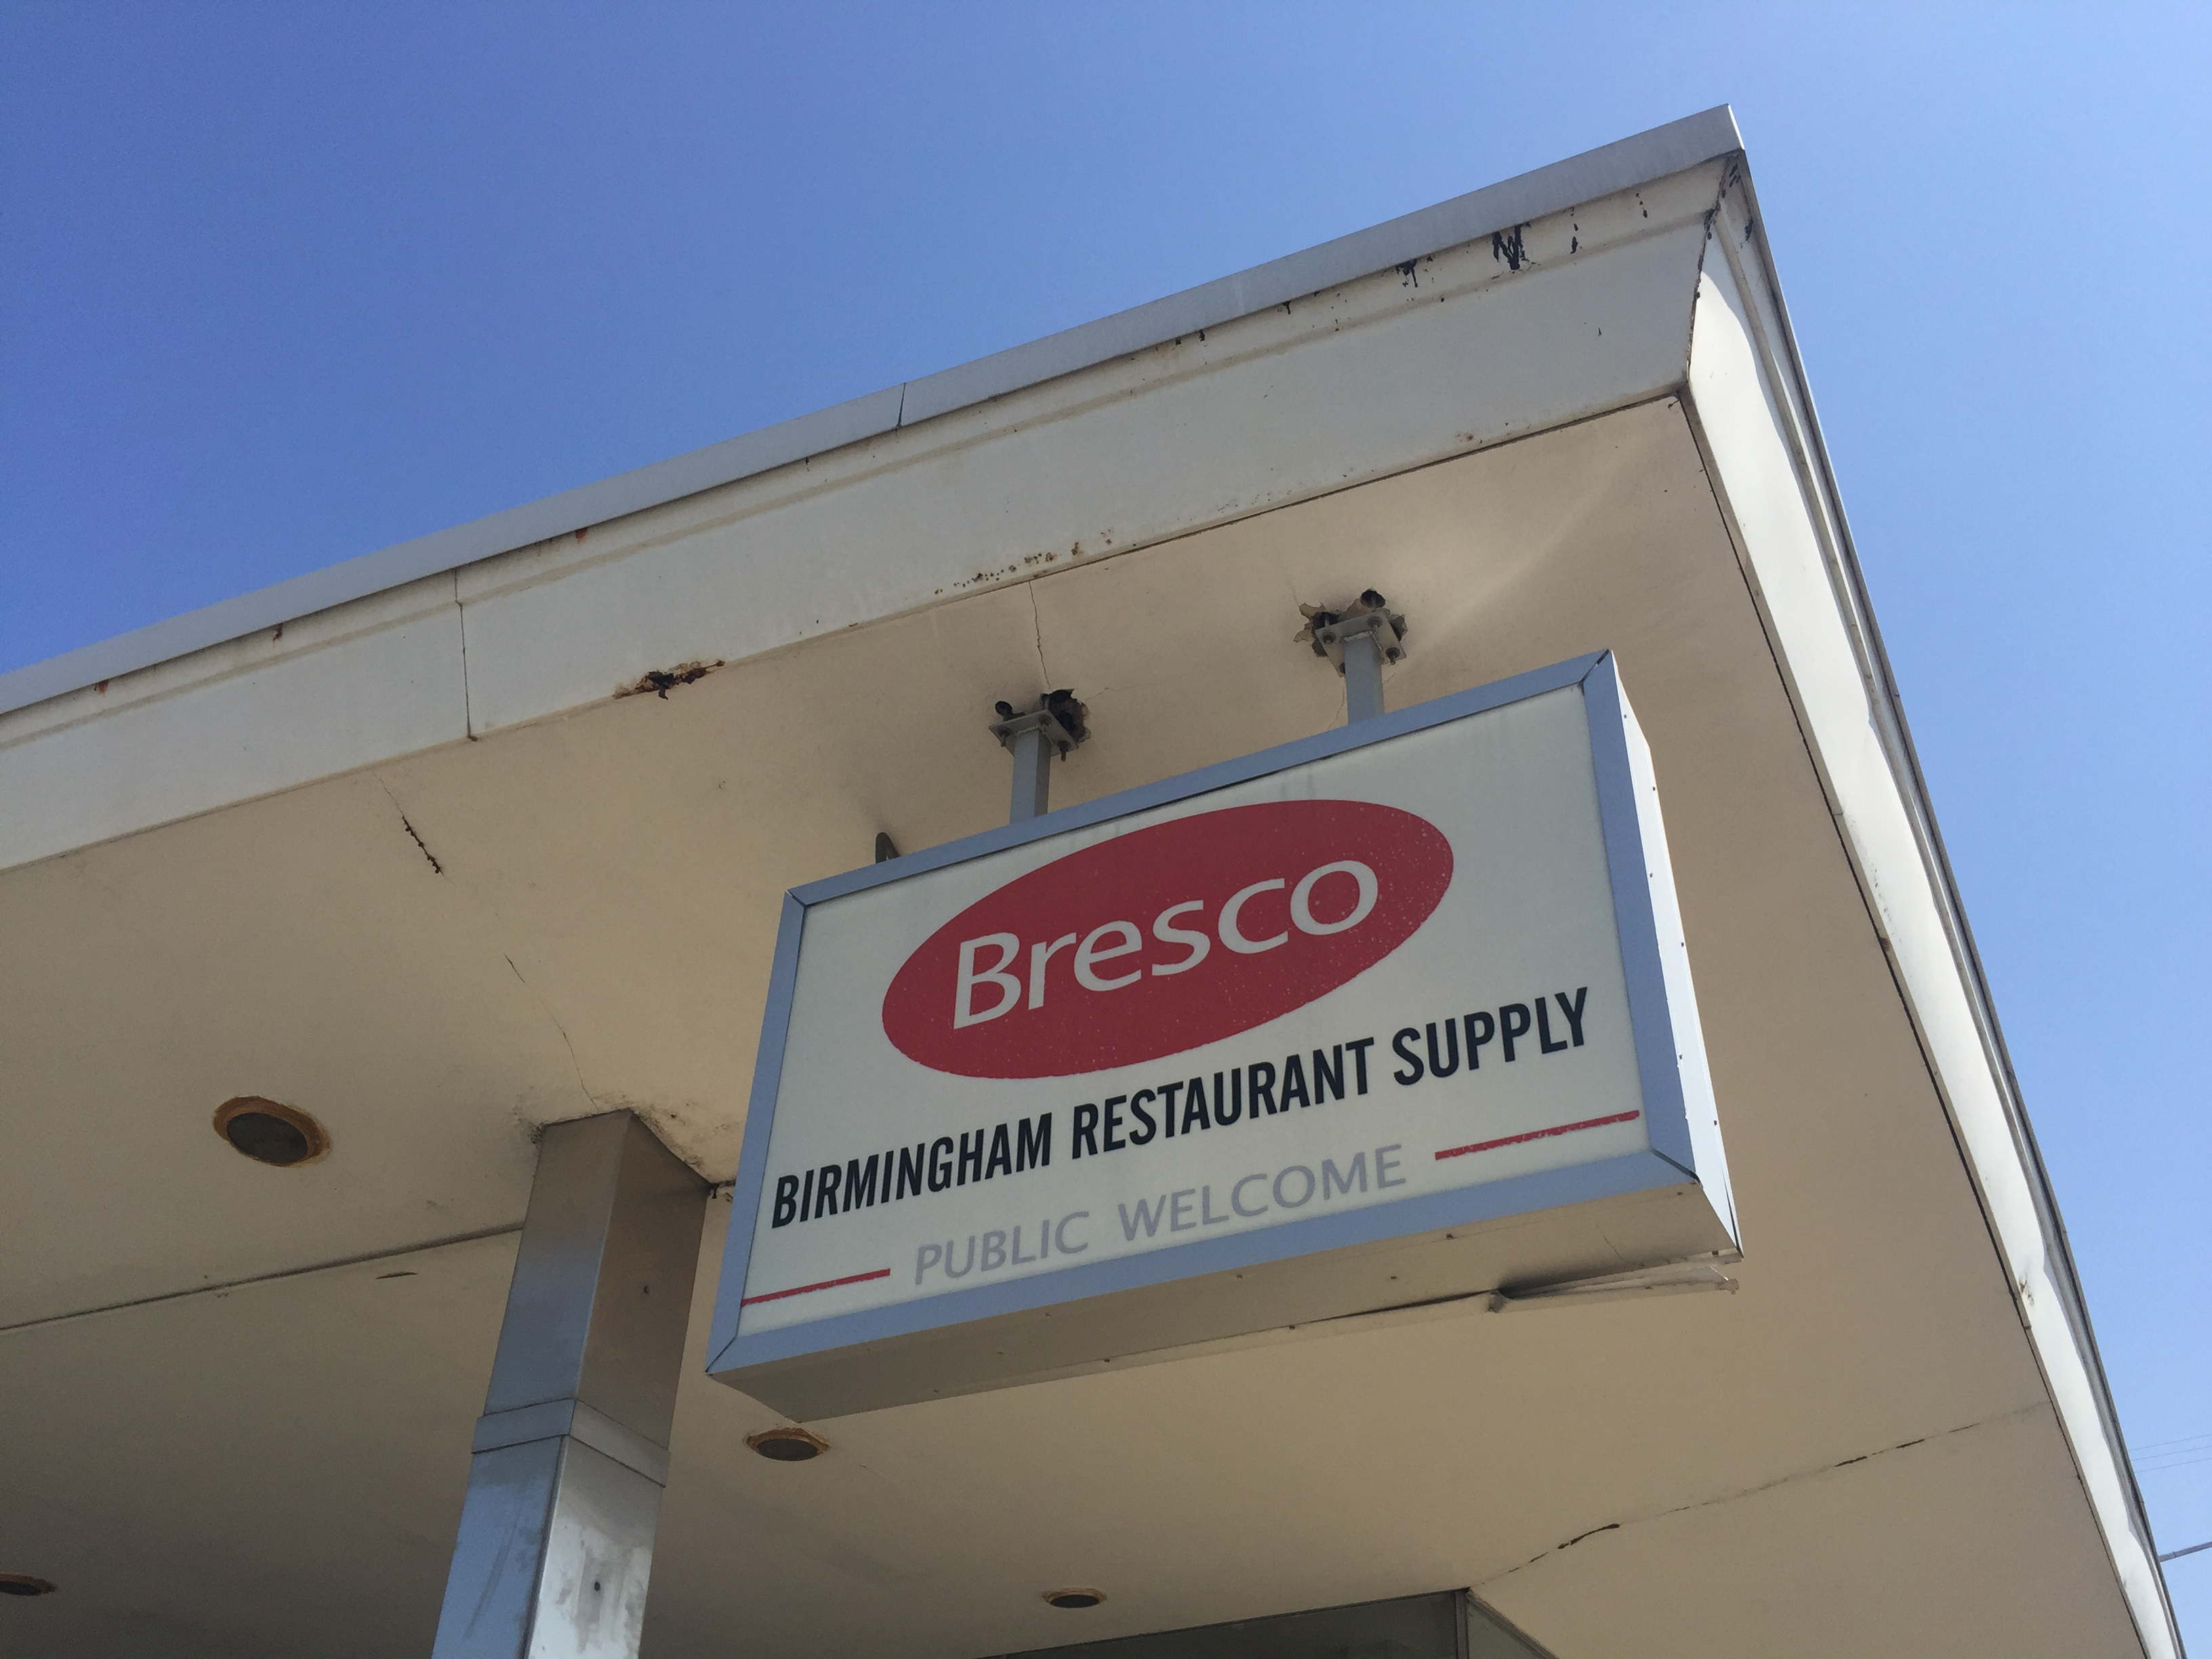 Bresco Birmingham Restaurant Supply